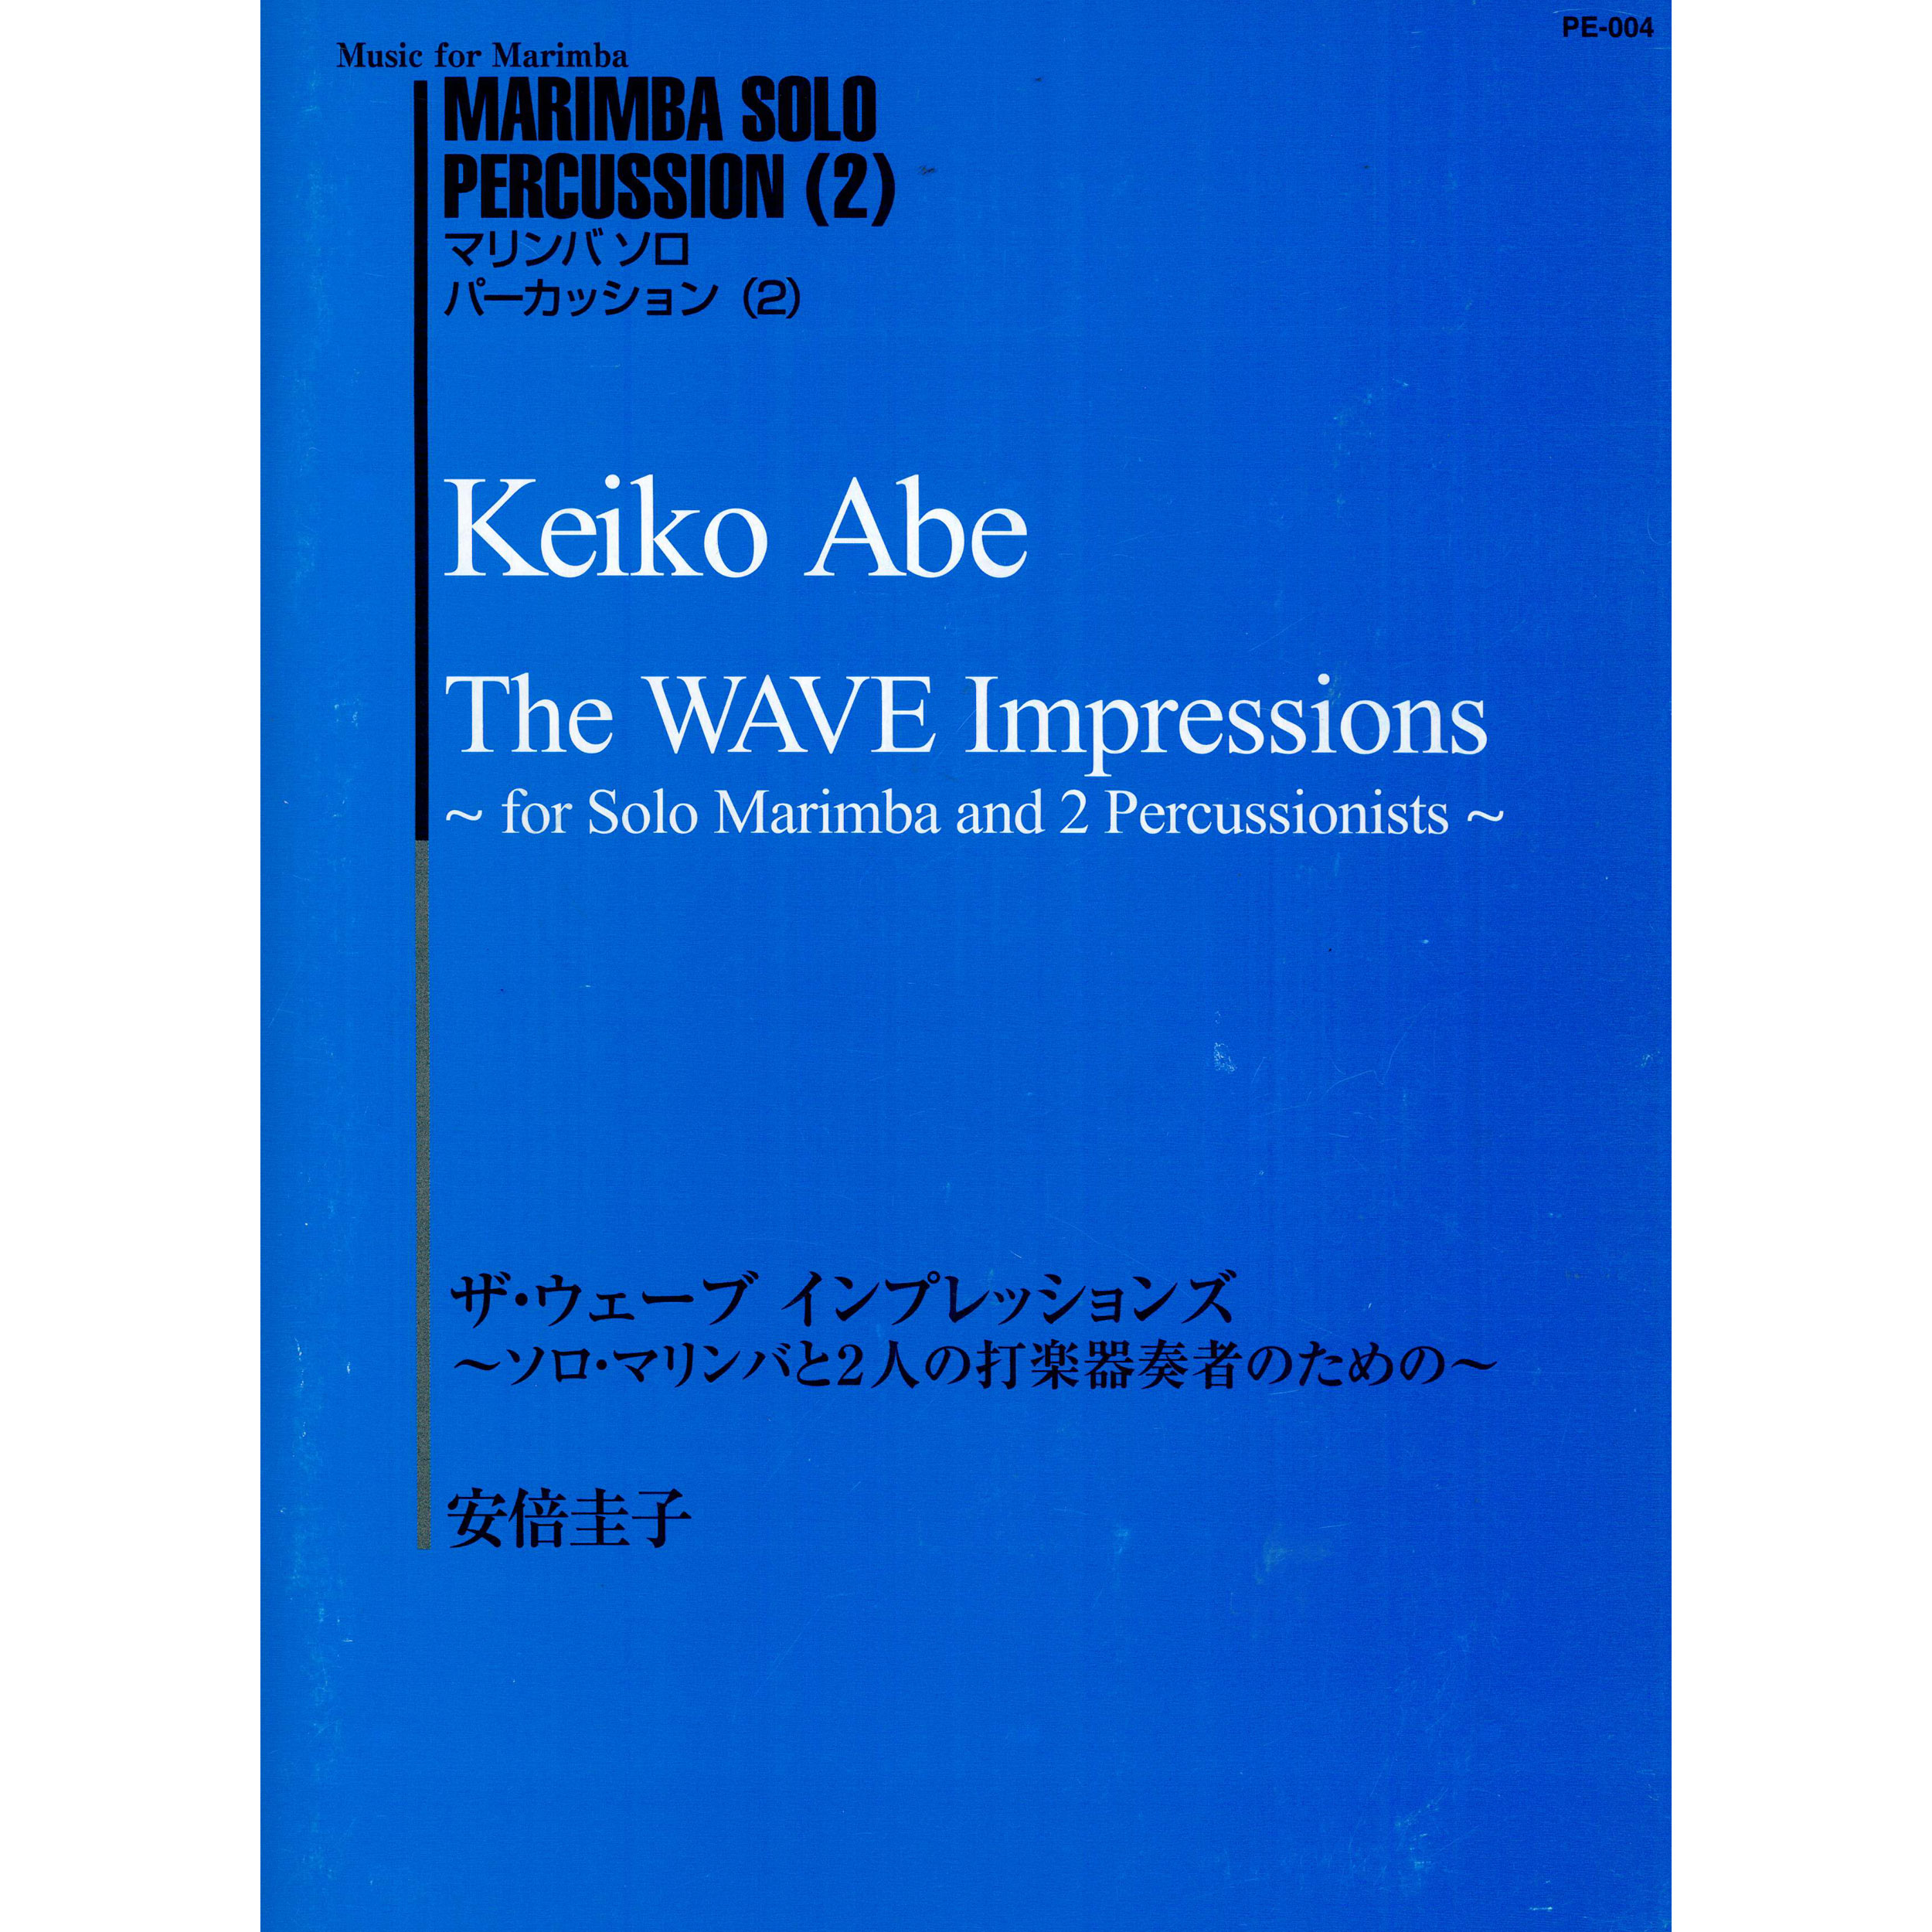 The Wave Impressions by Keiko Abe